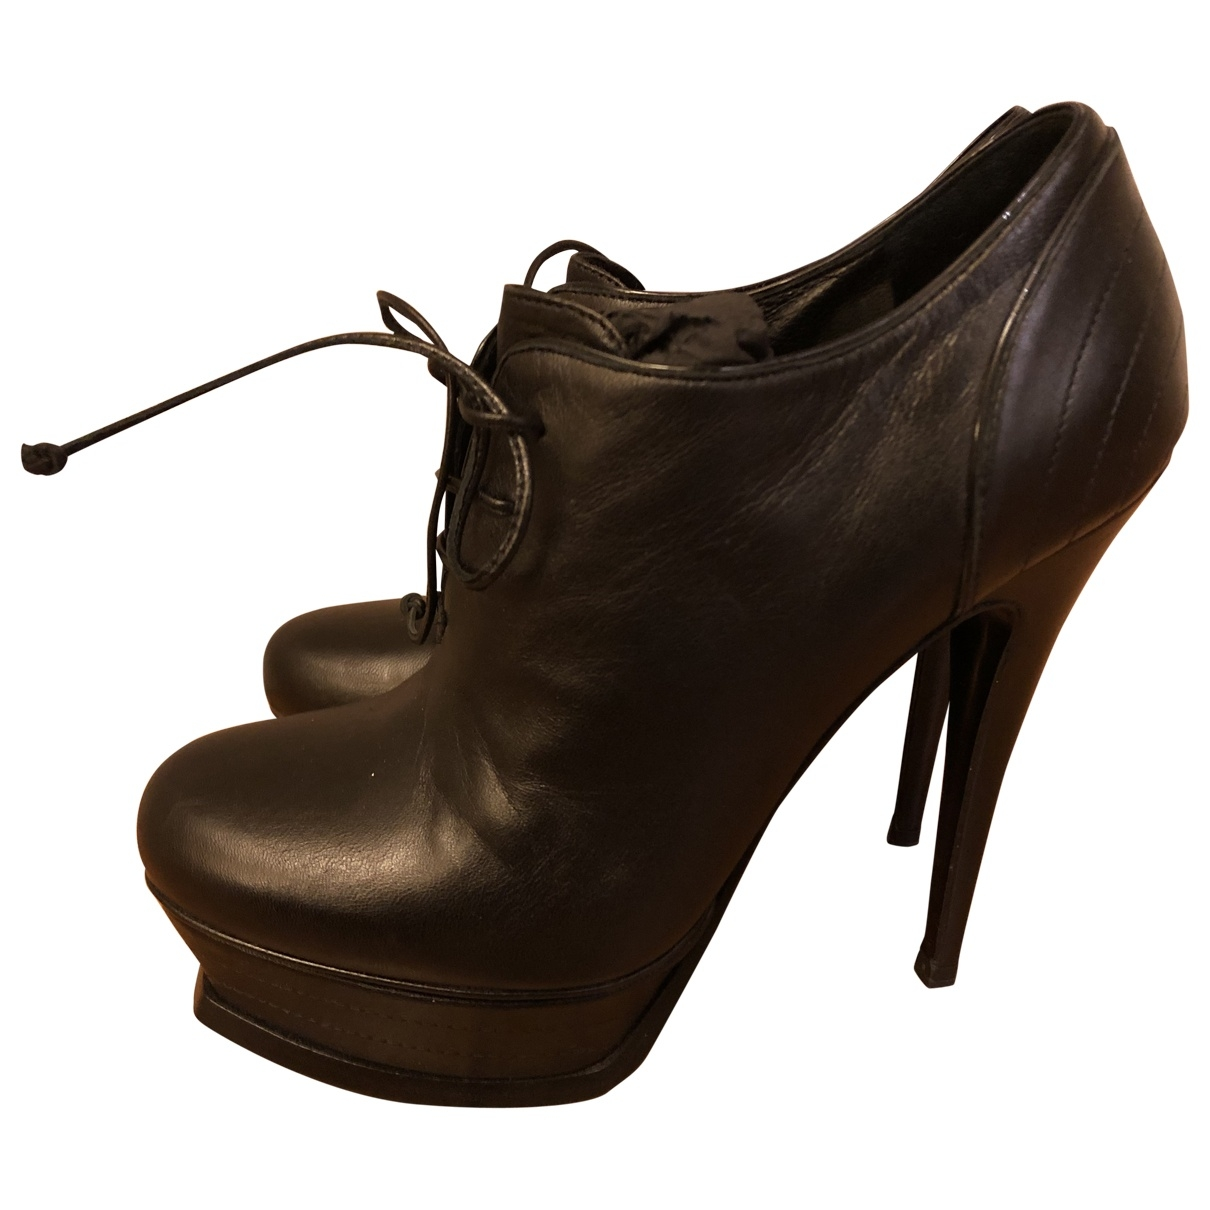 Yves Saint Laurent \N Black Leather Ankle boots for Women 37 EU